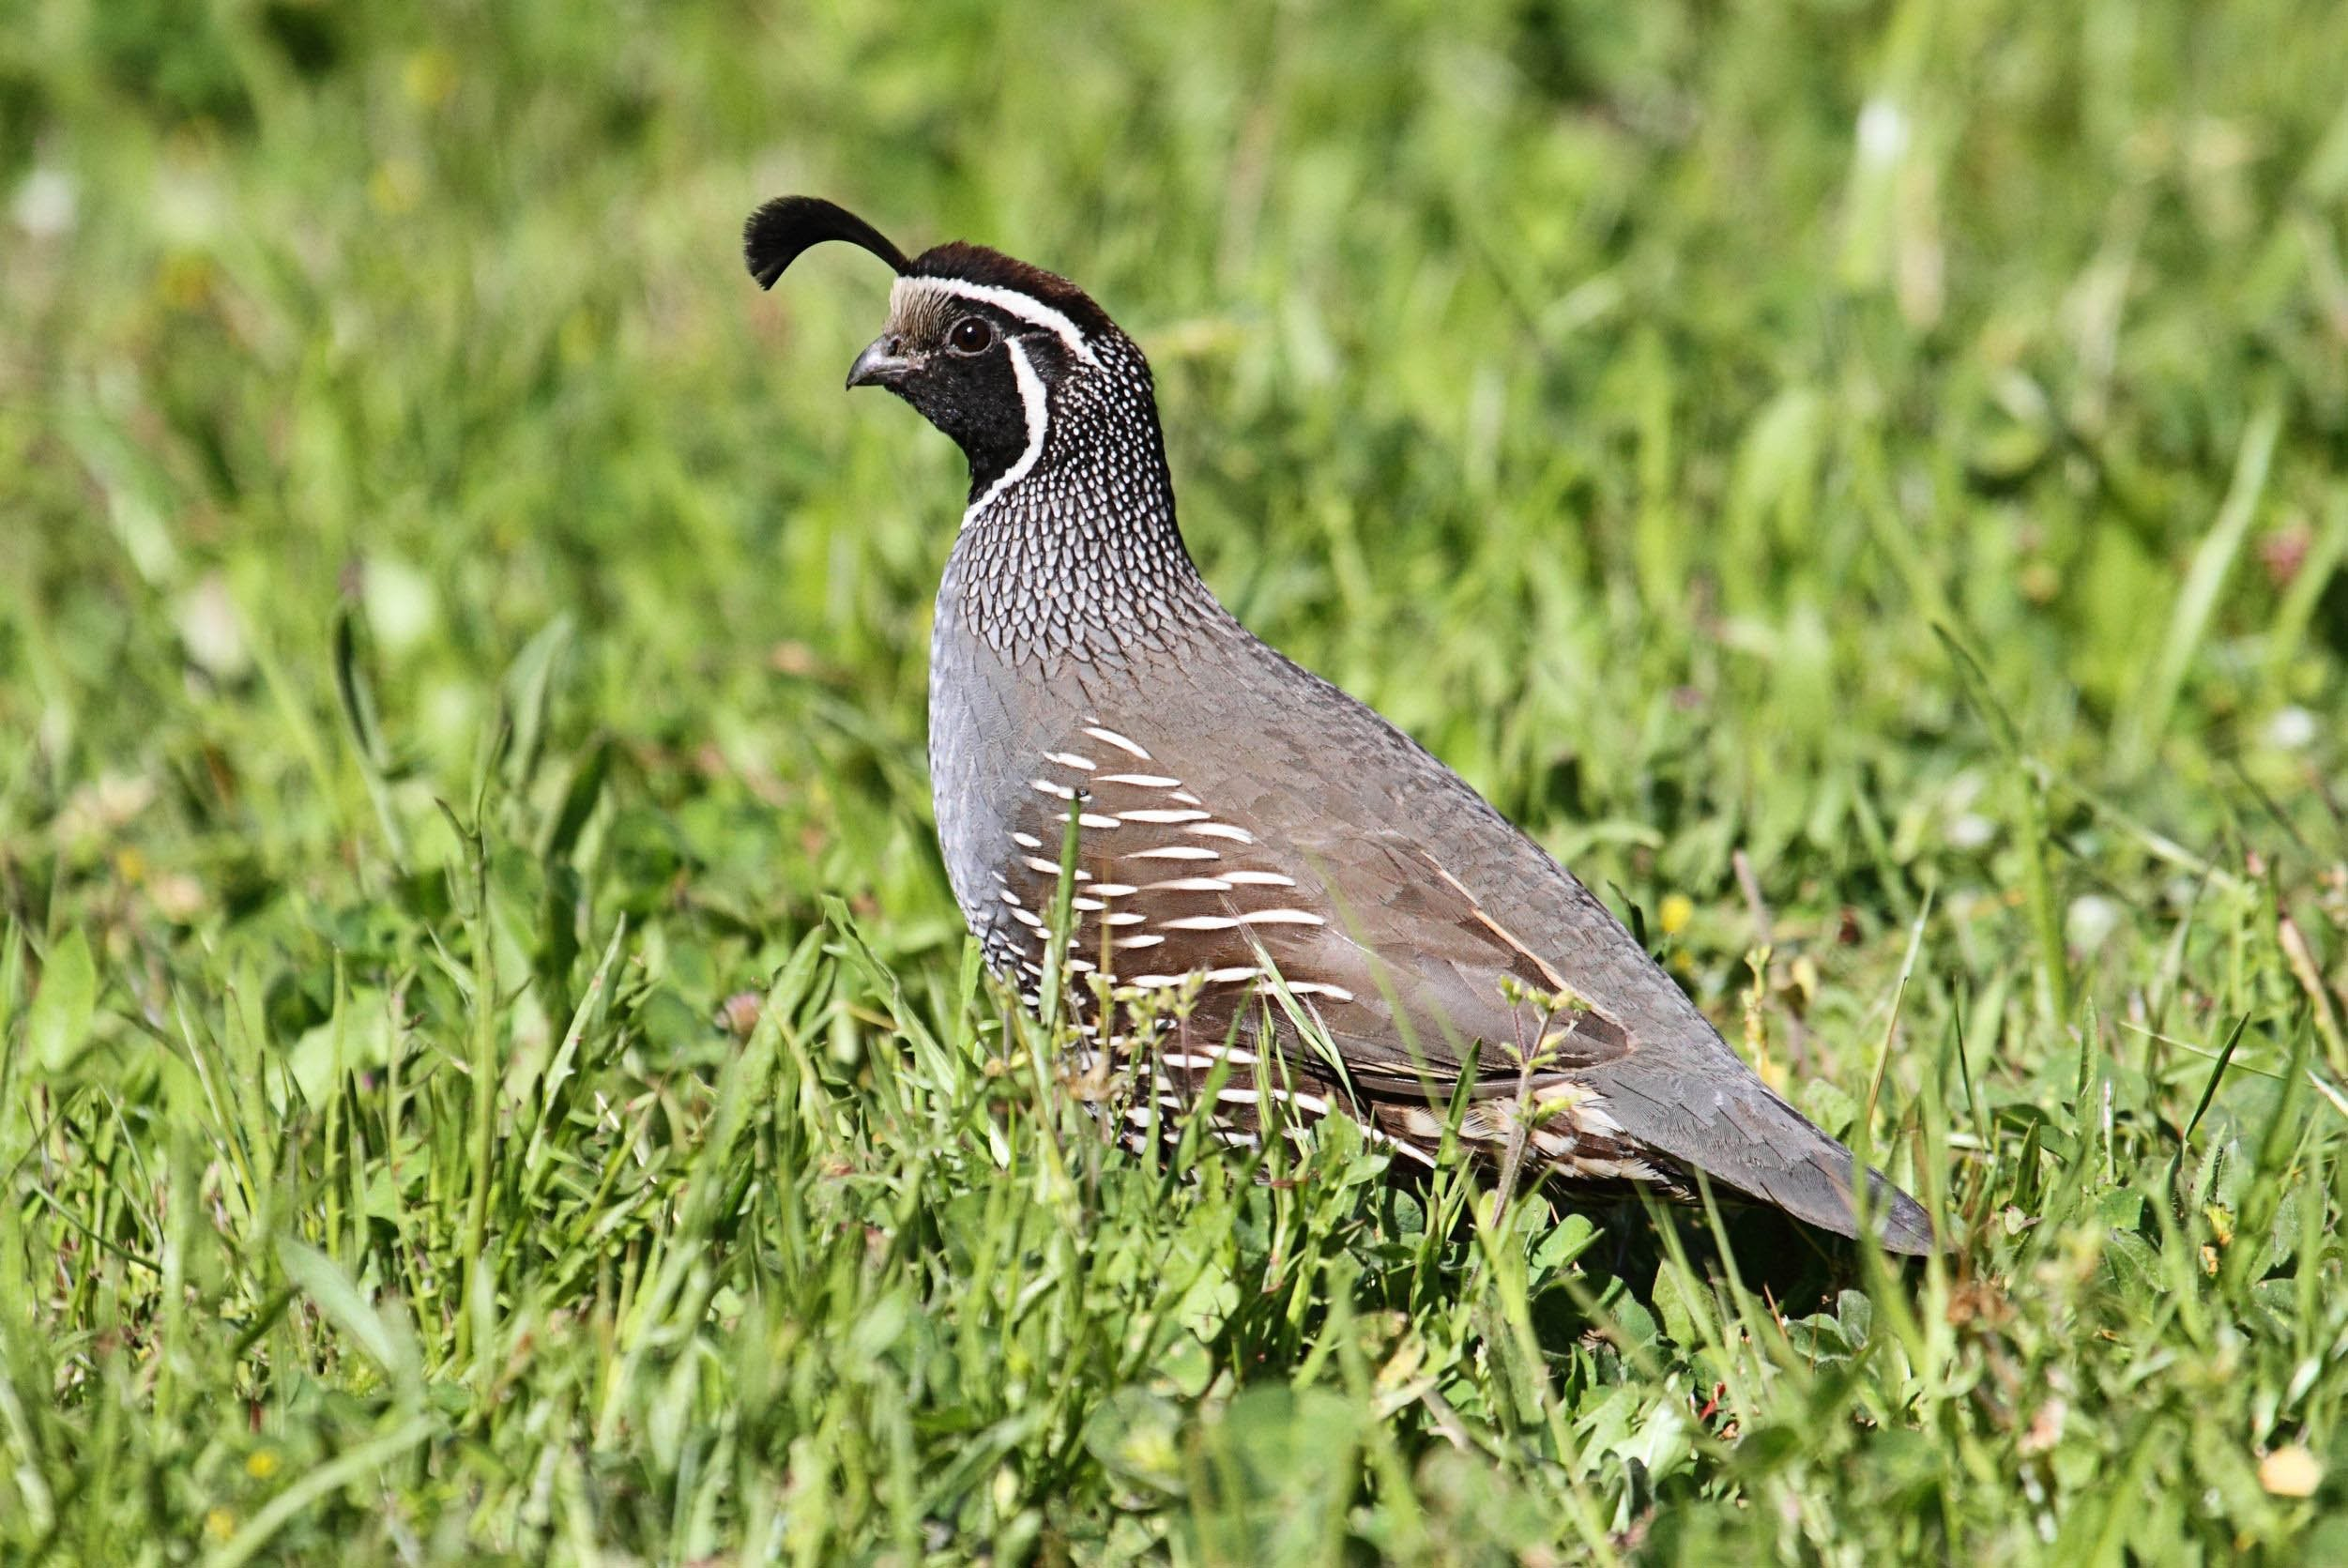 quail-in-grass-united-states